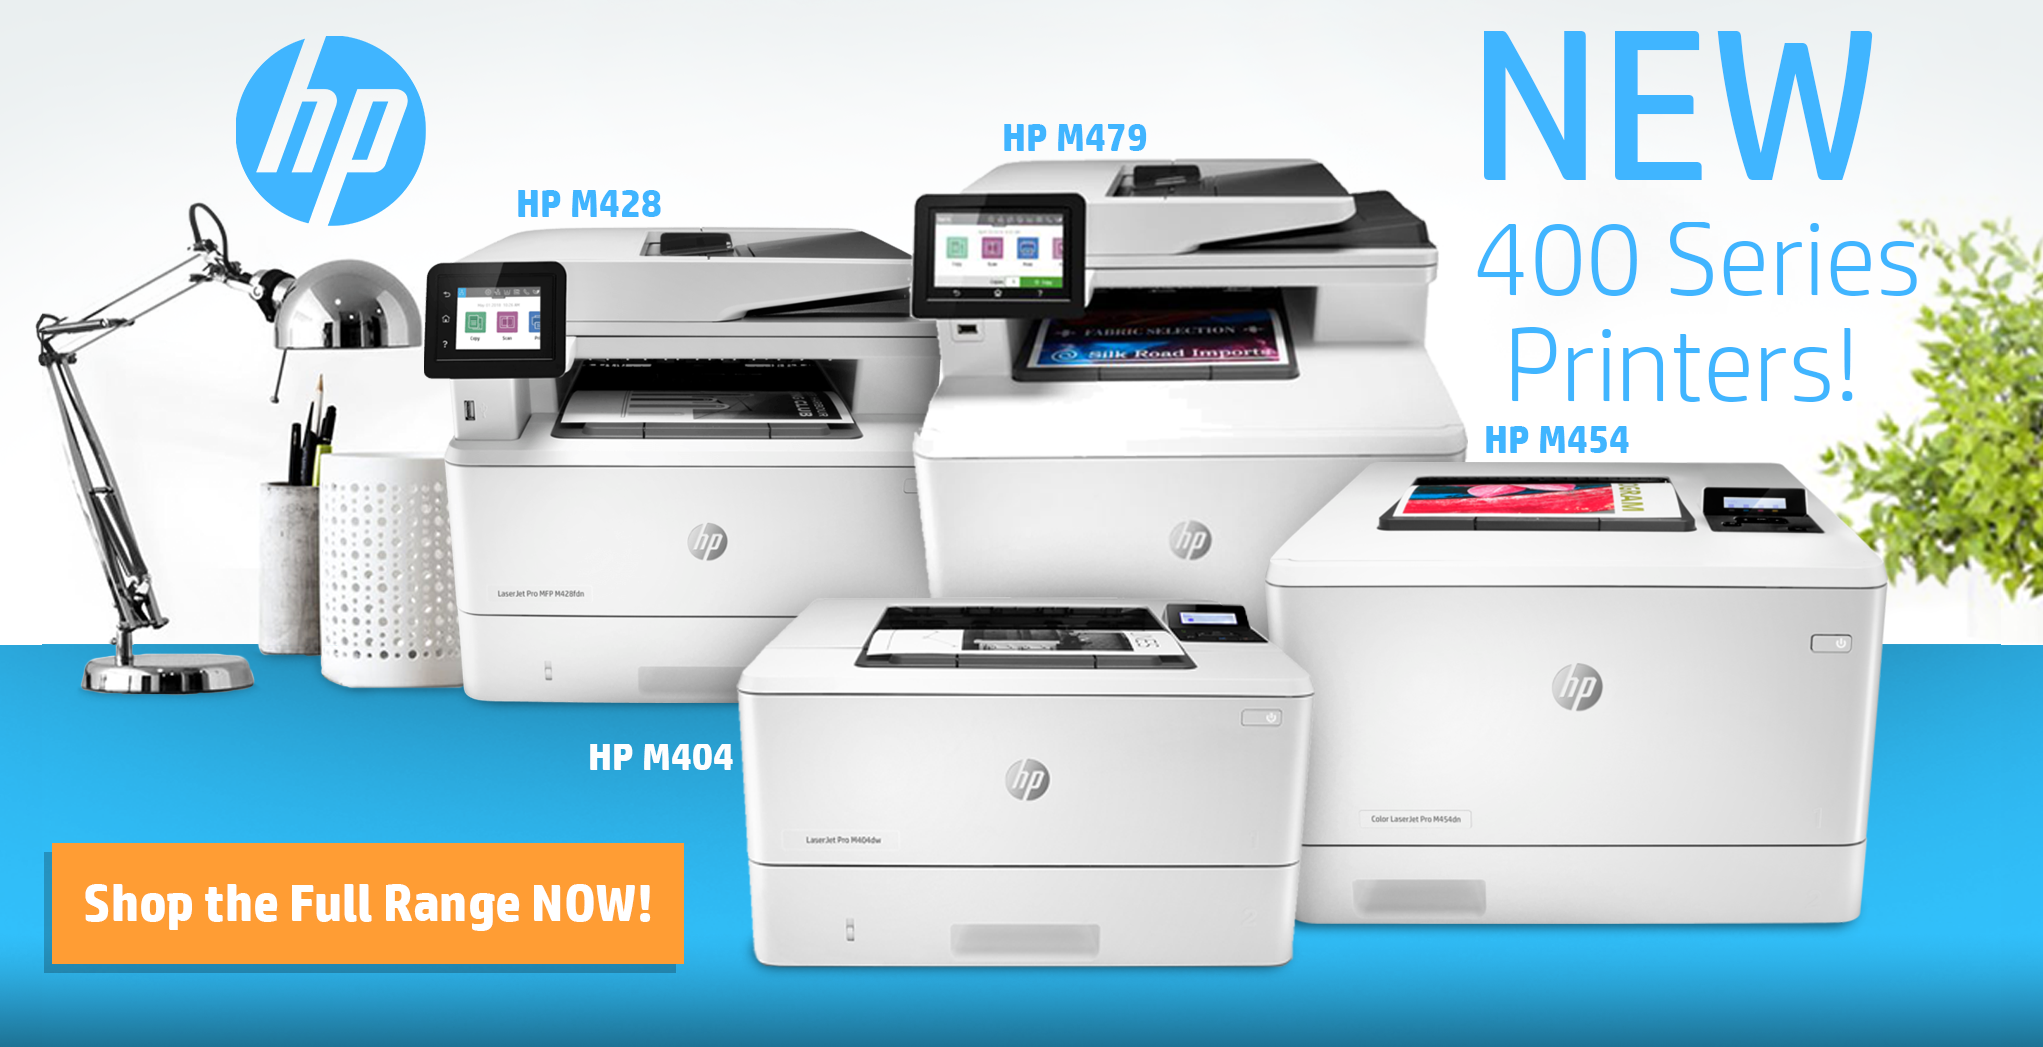 HP New 400 Series printers